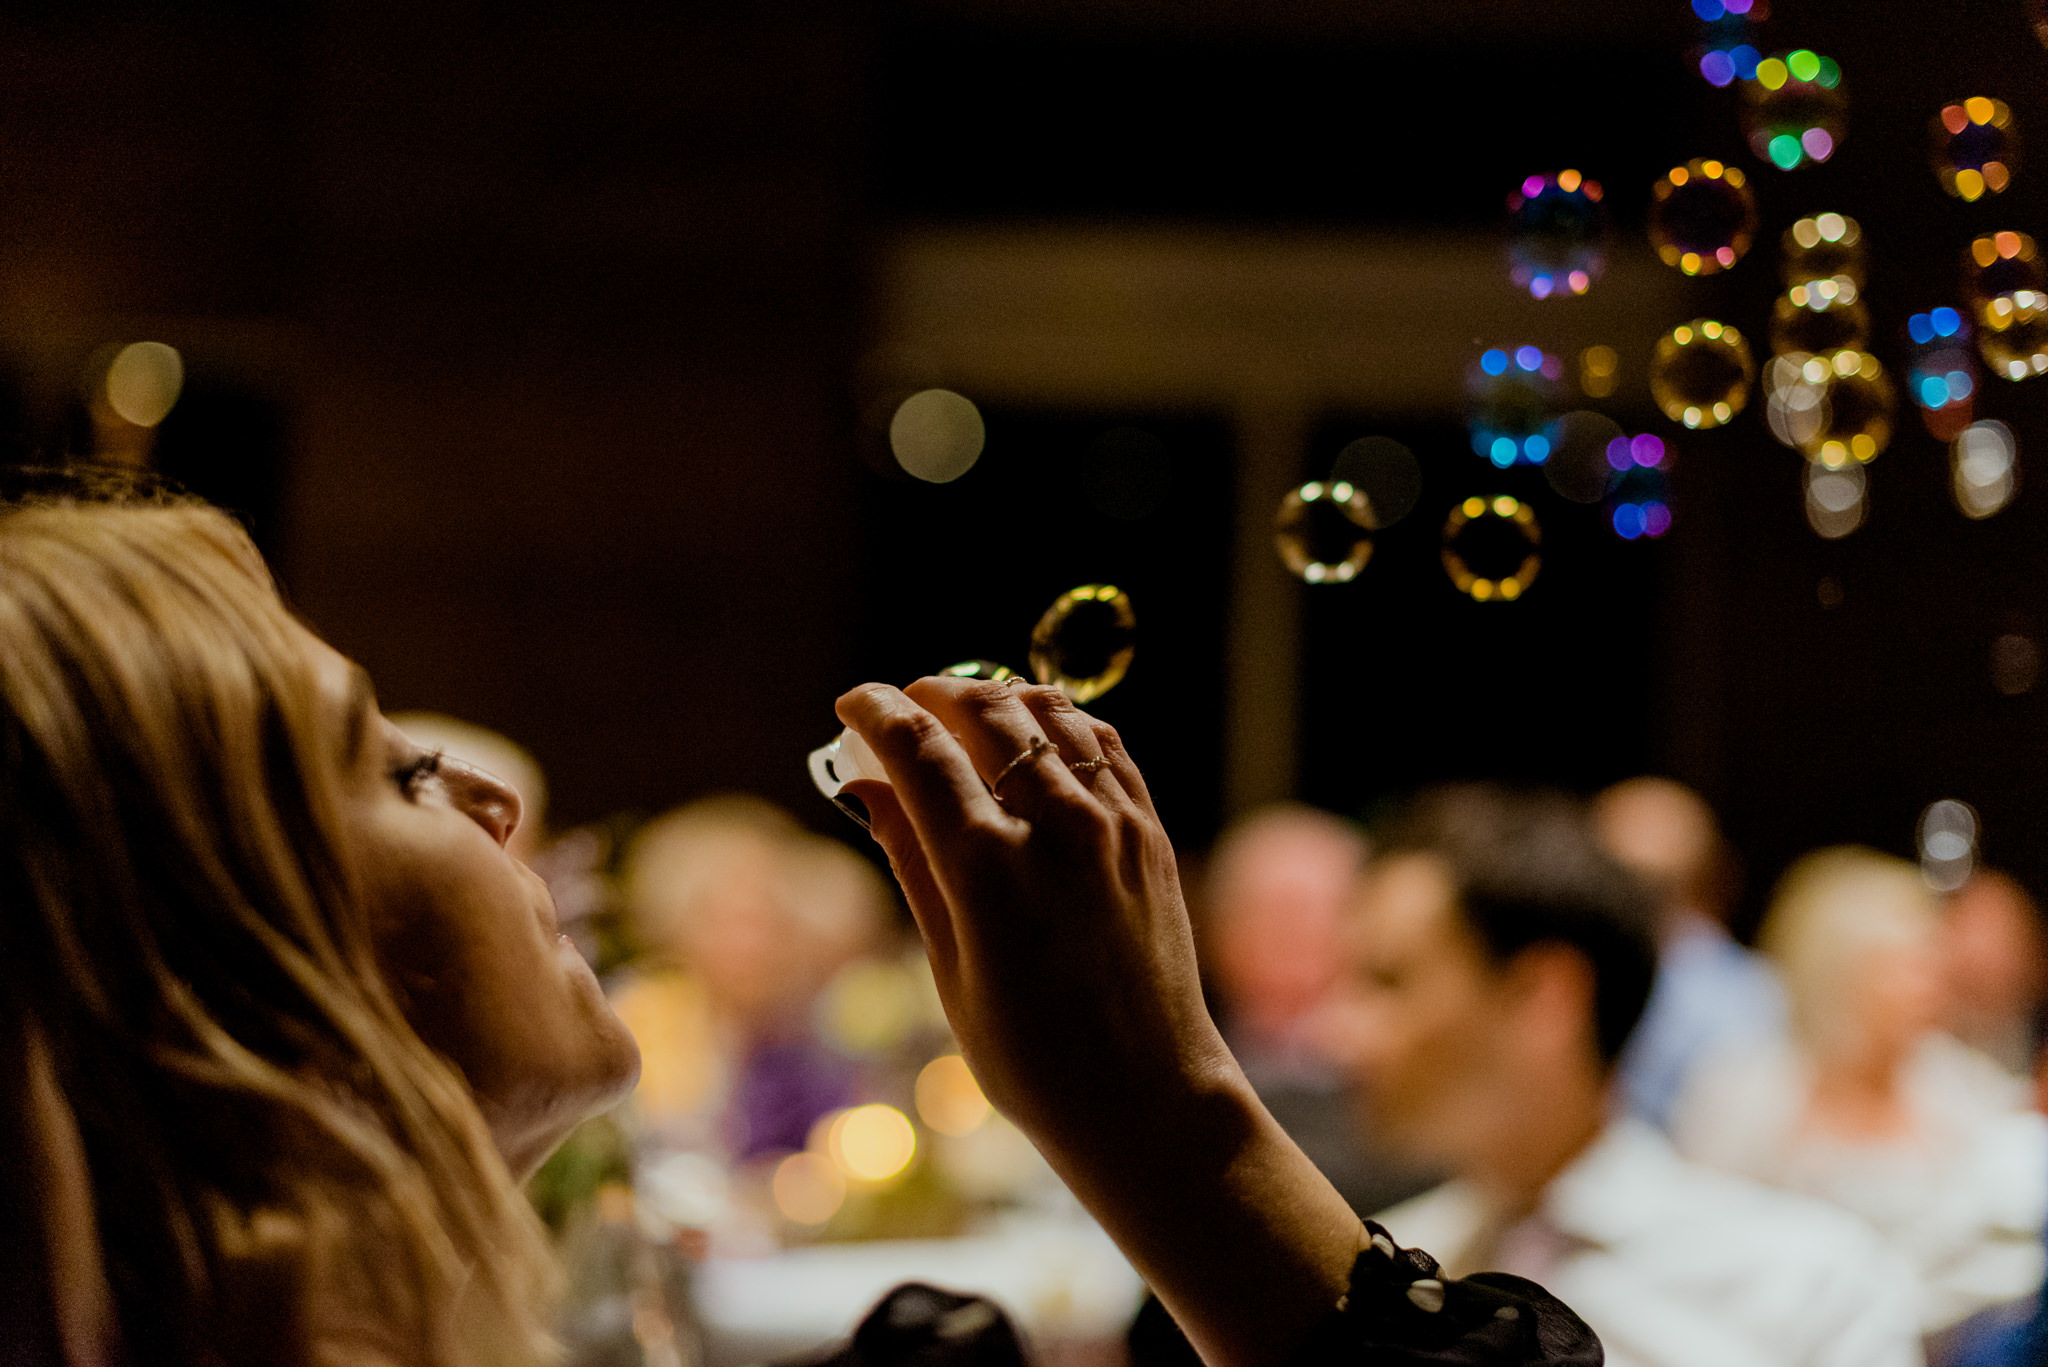 A blonde lady blows bubbles upwards at a dinner event